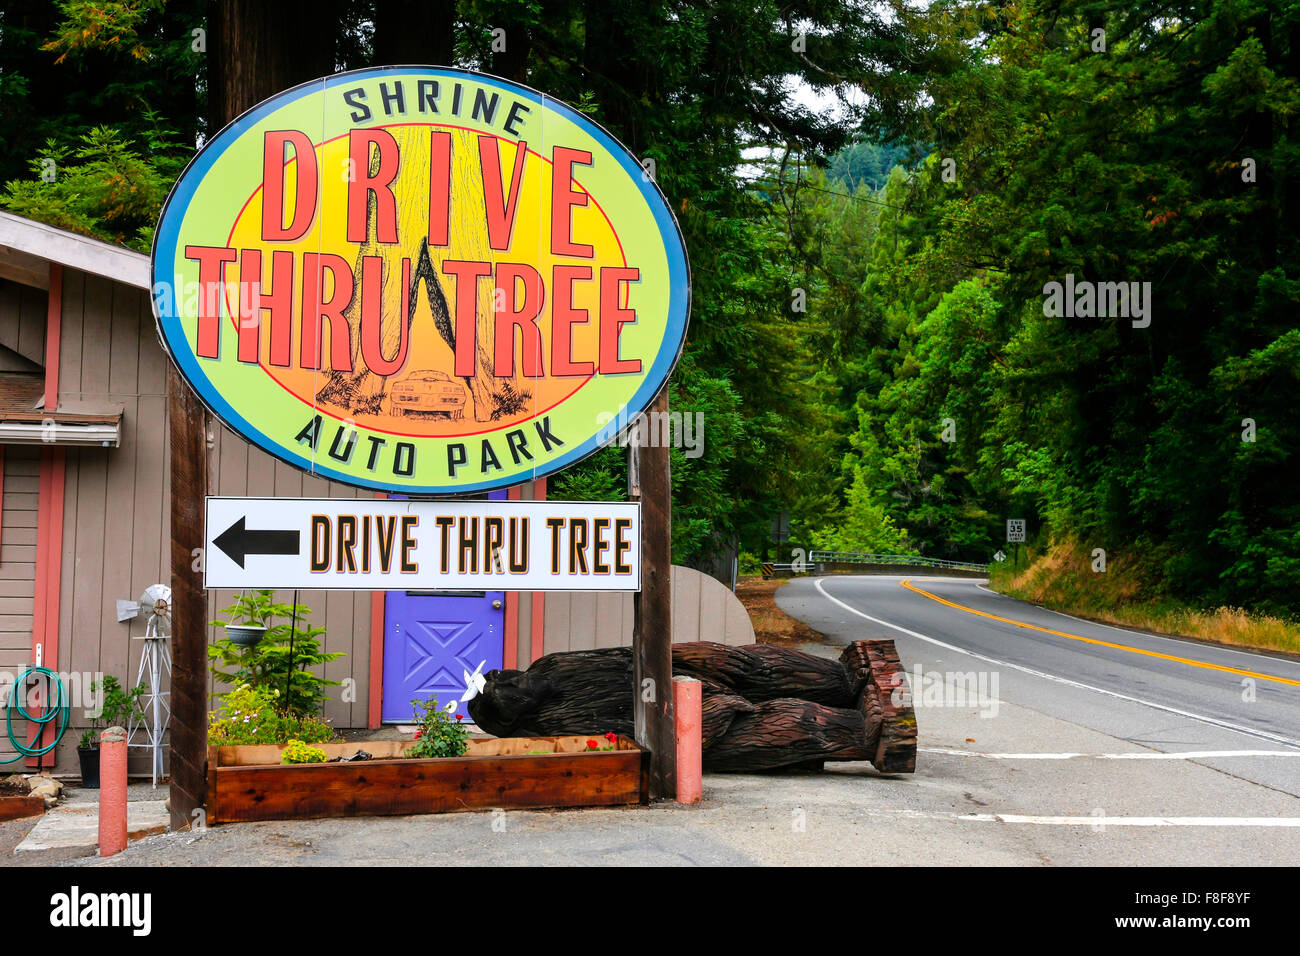 The Drive Thru Shrine Tree auto park overhead sign in Myers Flat California - Stock Image